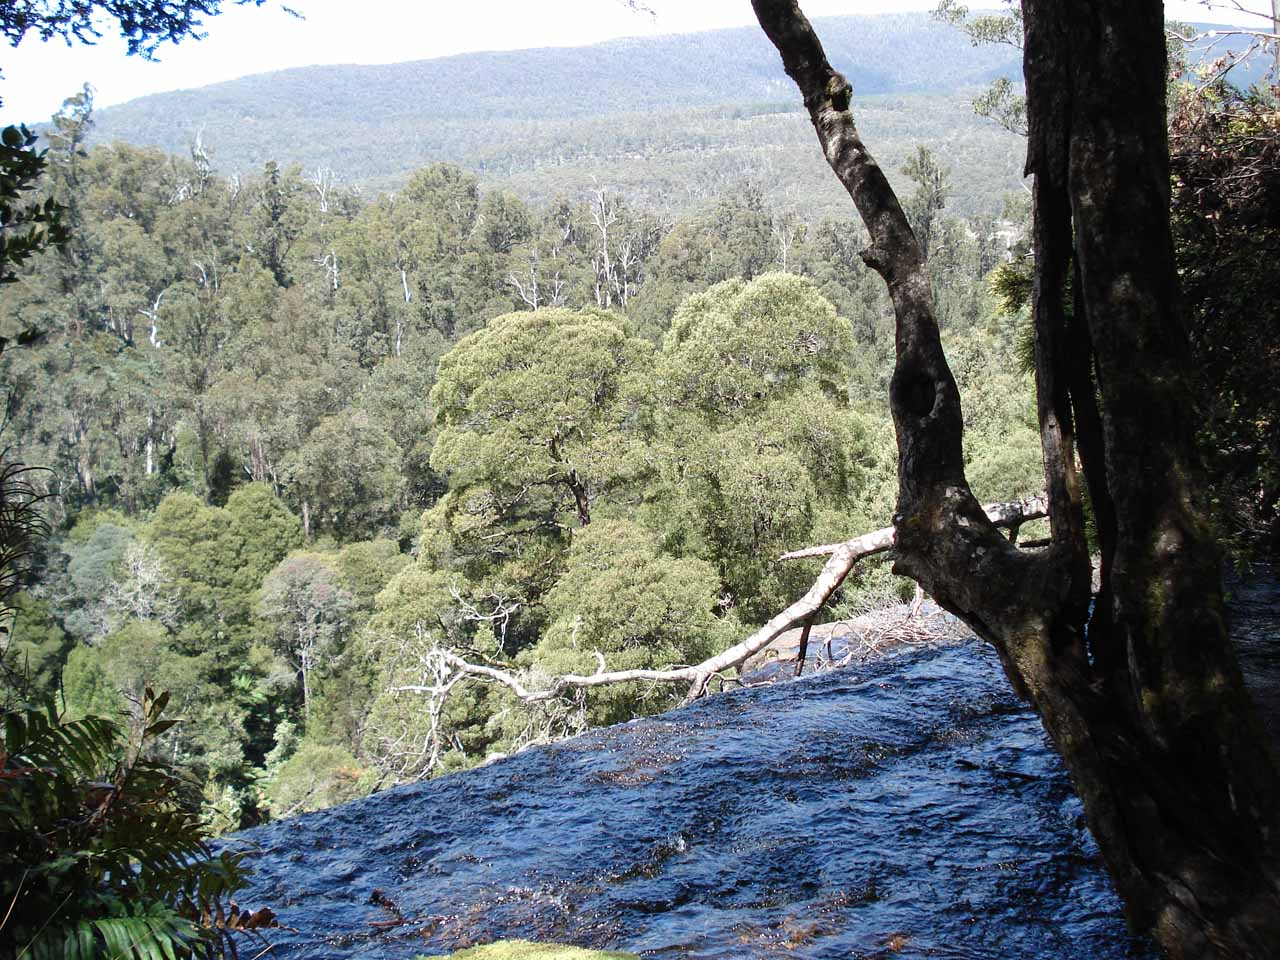 This precarious view was from the top of the Lower Russell Falls, which allowed me to see the forest of Mt Field National Park.  I was careful not to get too close to the edge though